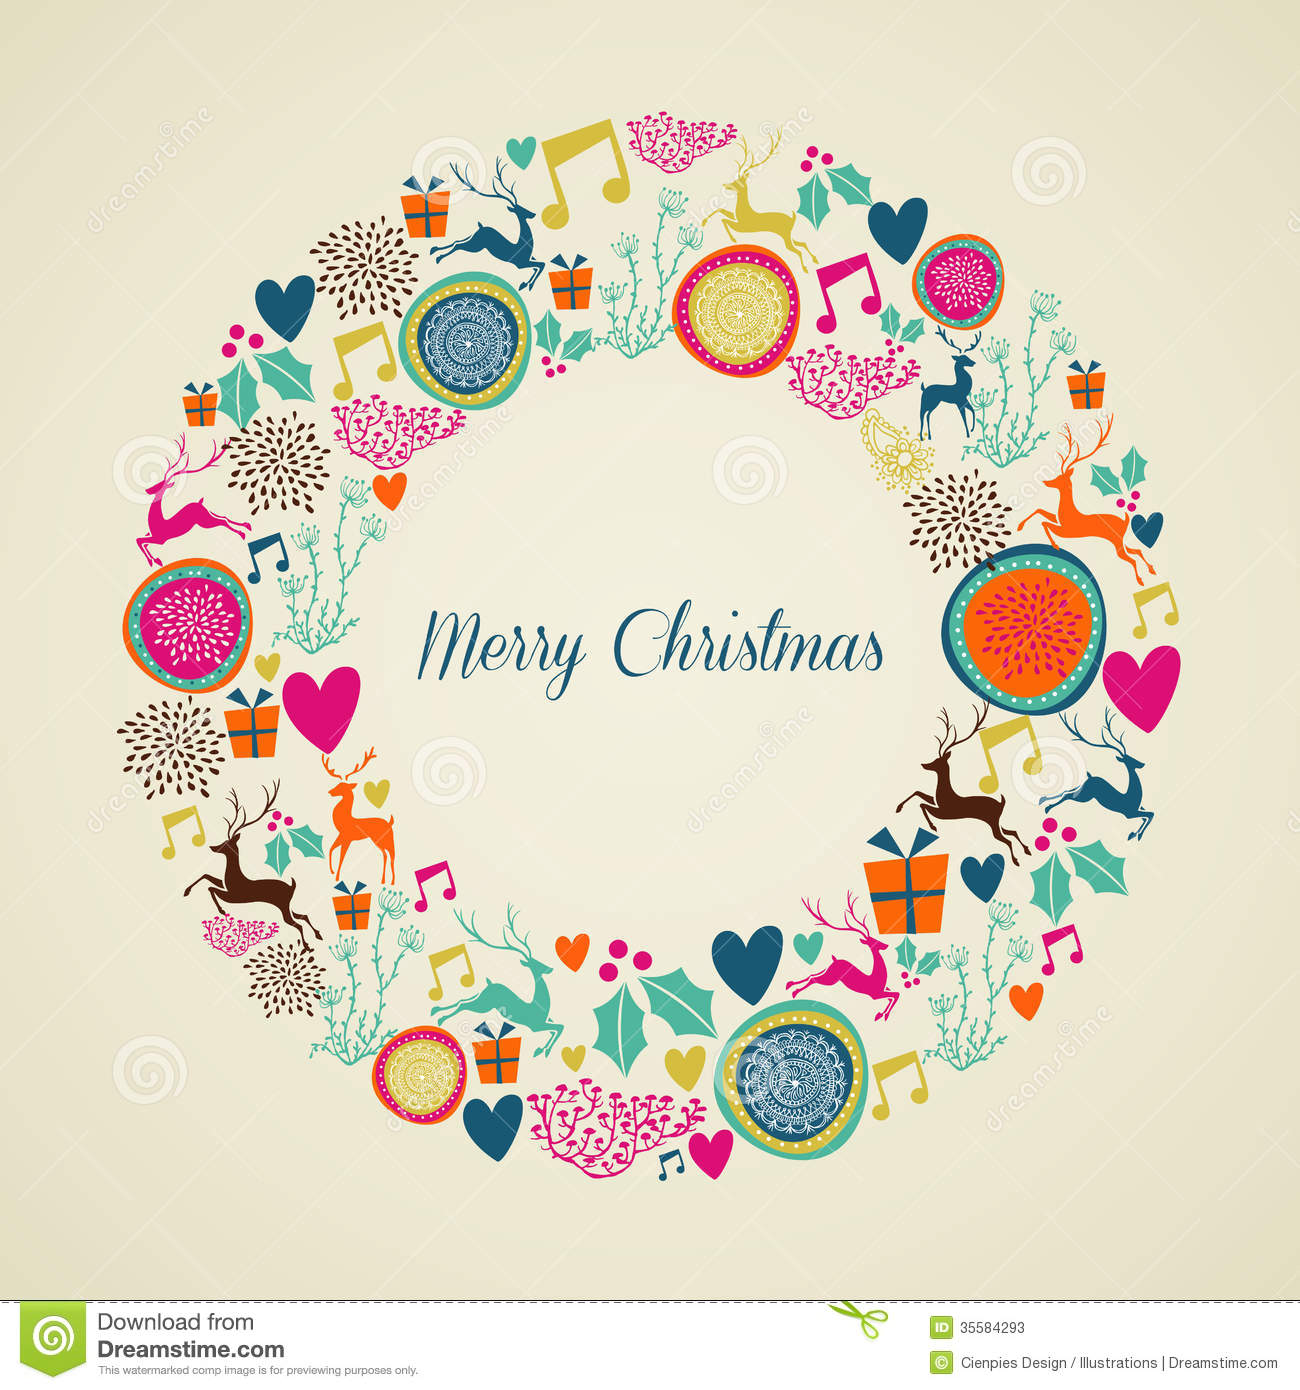 Merry Vintage Christmas Elements Wreath Stock Photos